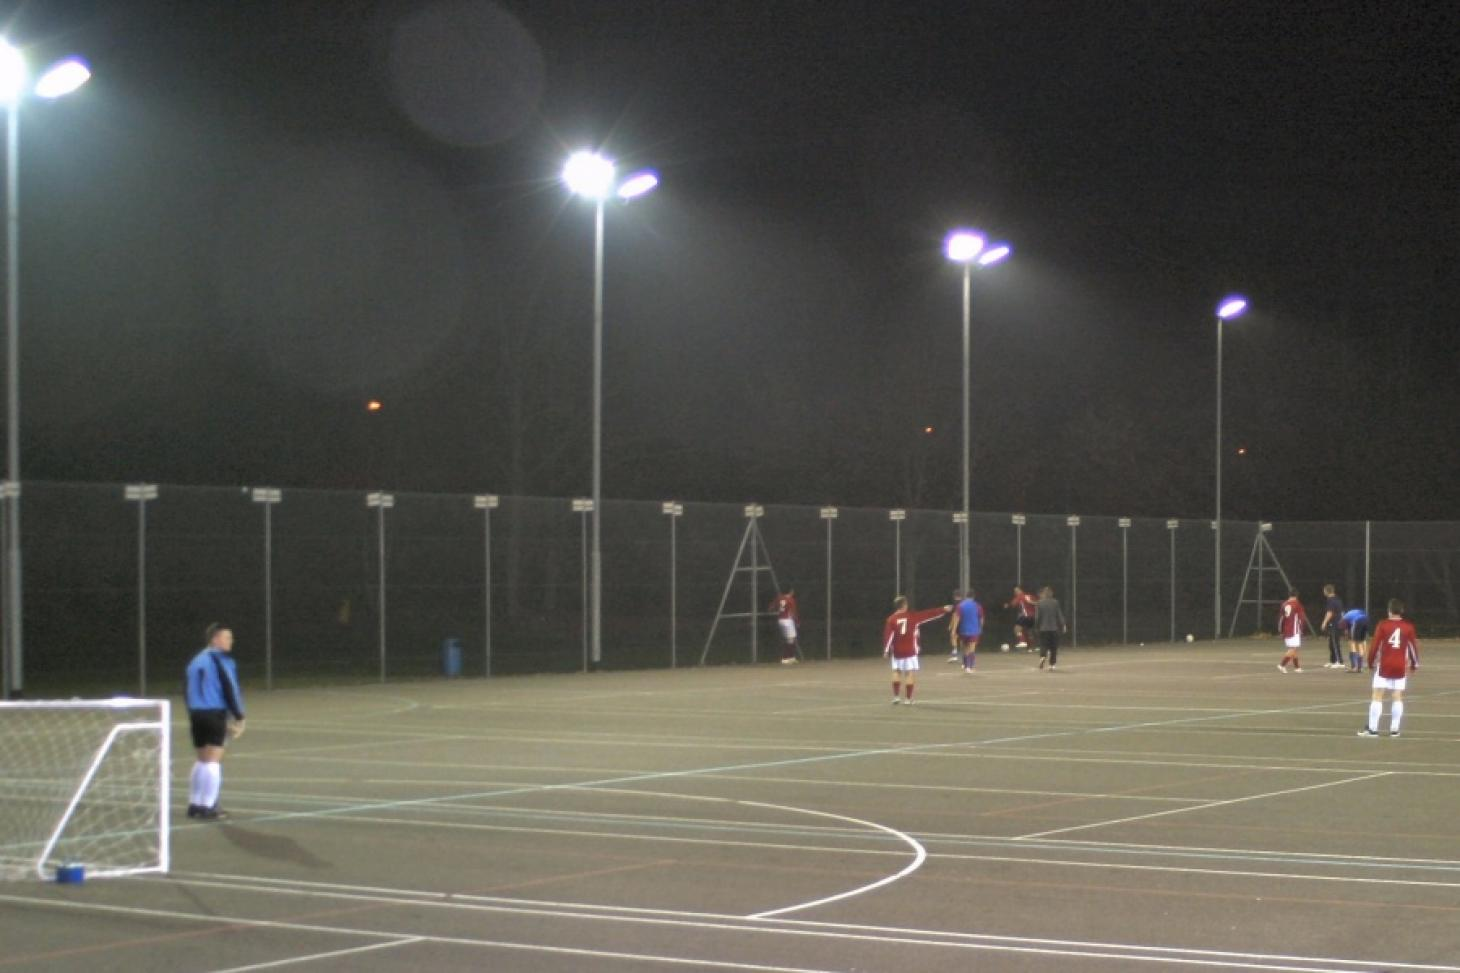 Grasshoppers Rugby Club 5 a side | Concrete football pitch